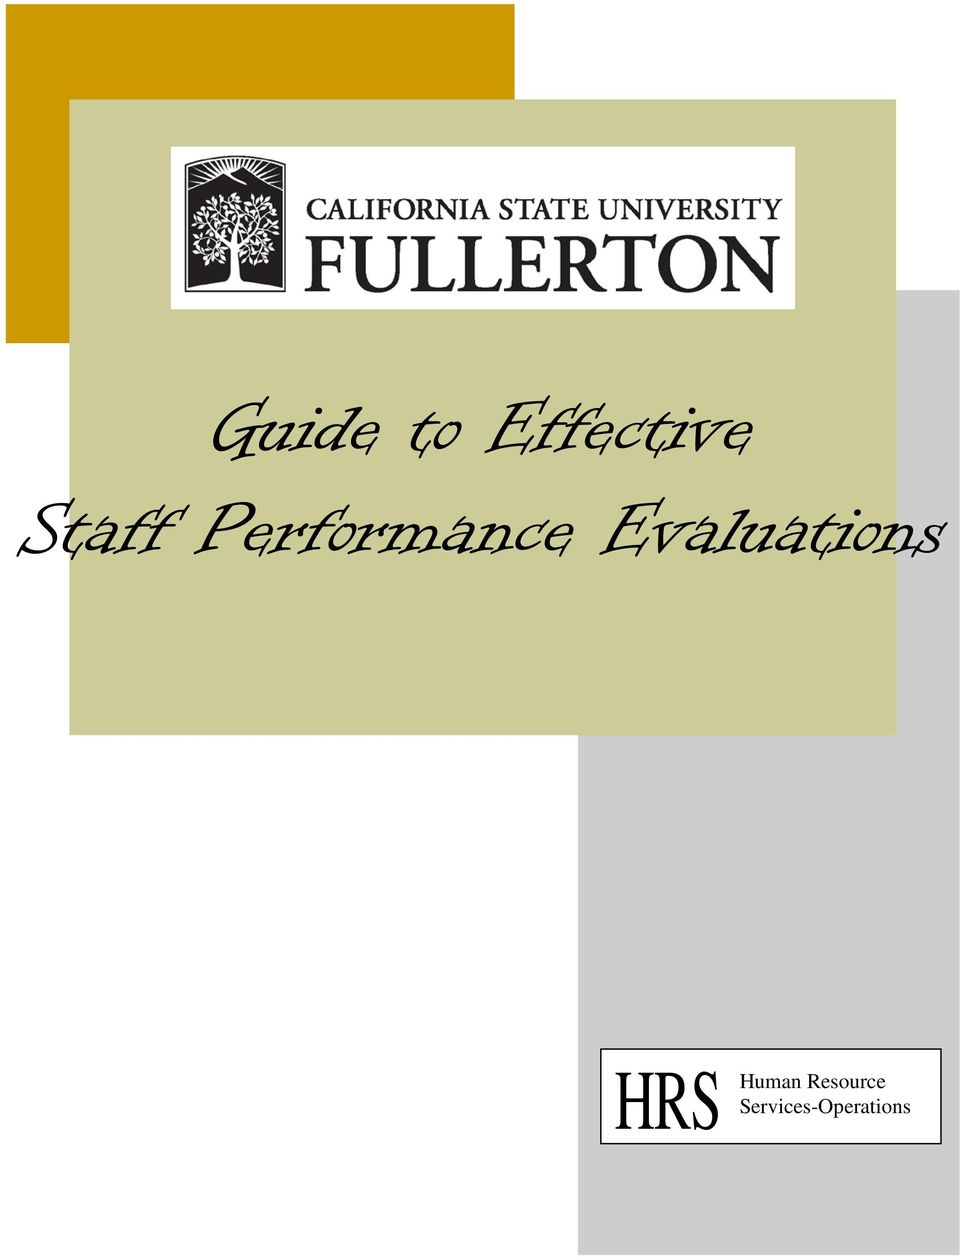 Evaluations HRS Human